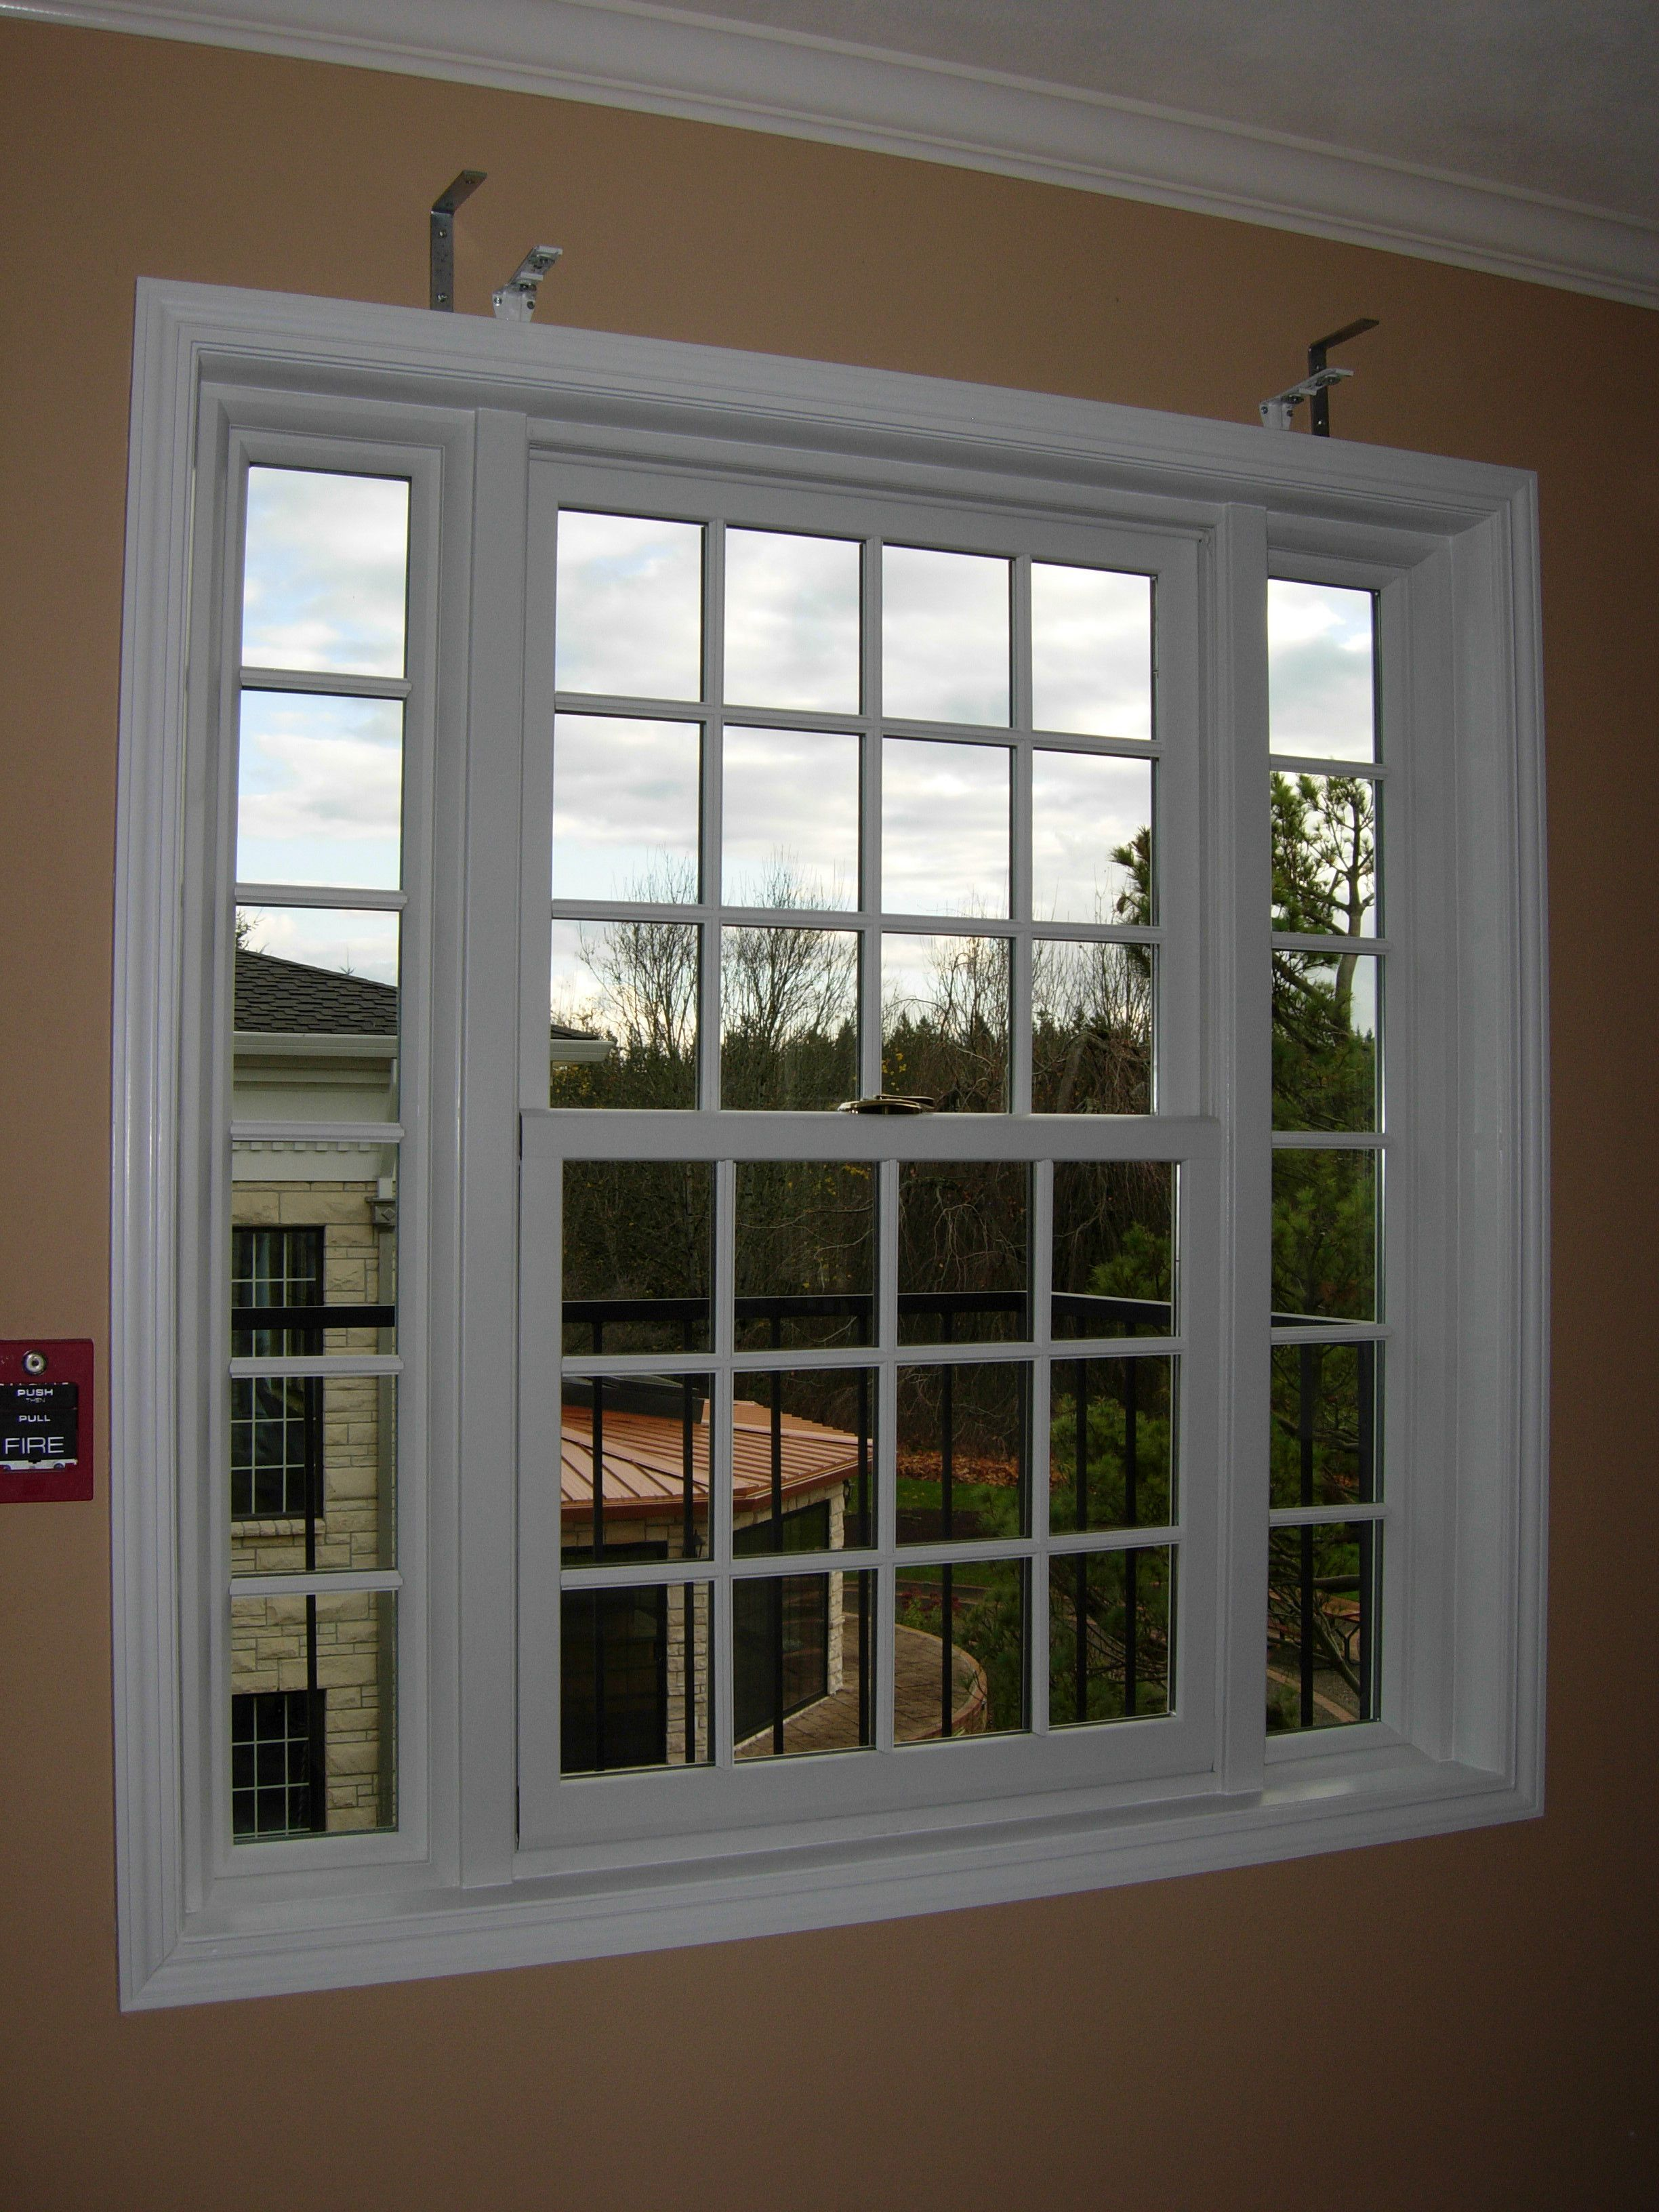 This Is A Double Hung Picture Combination Window With